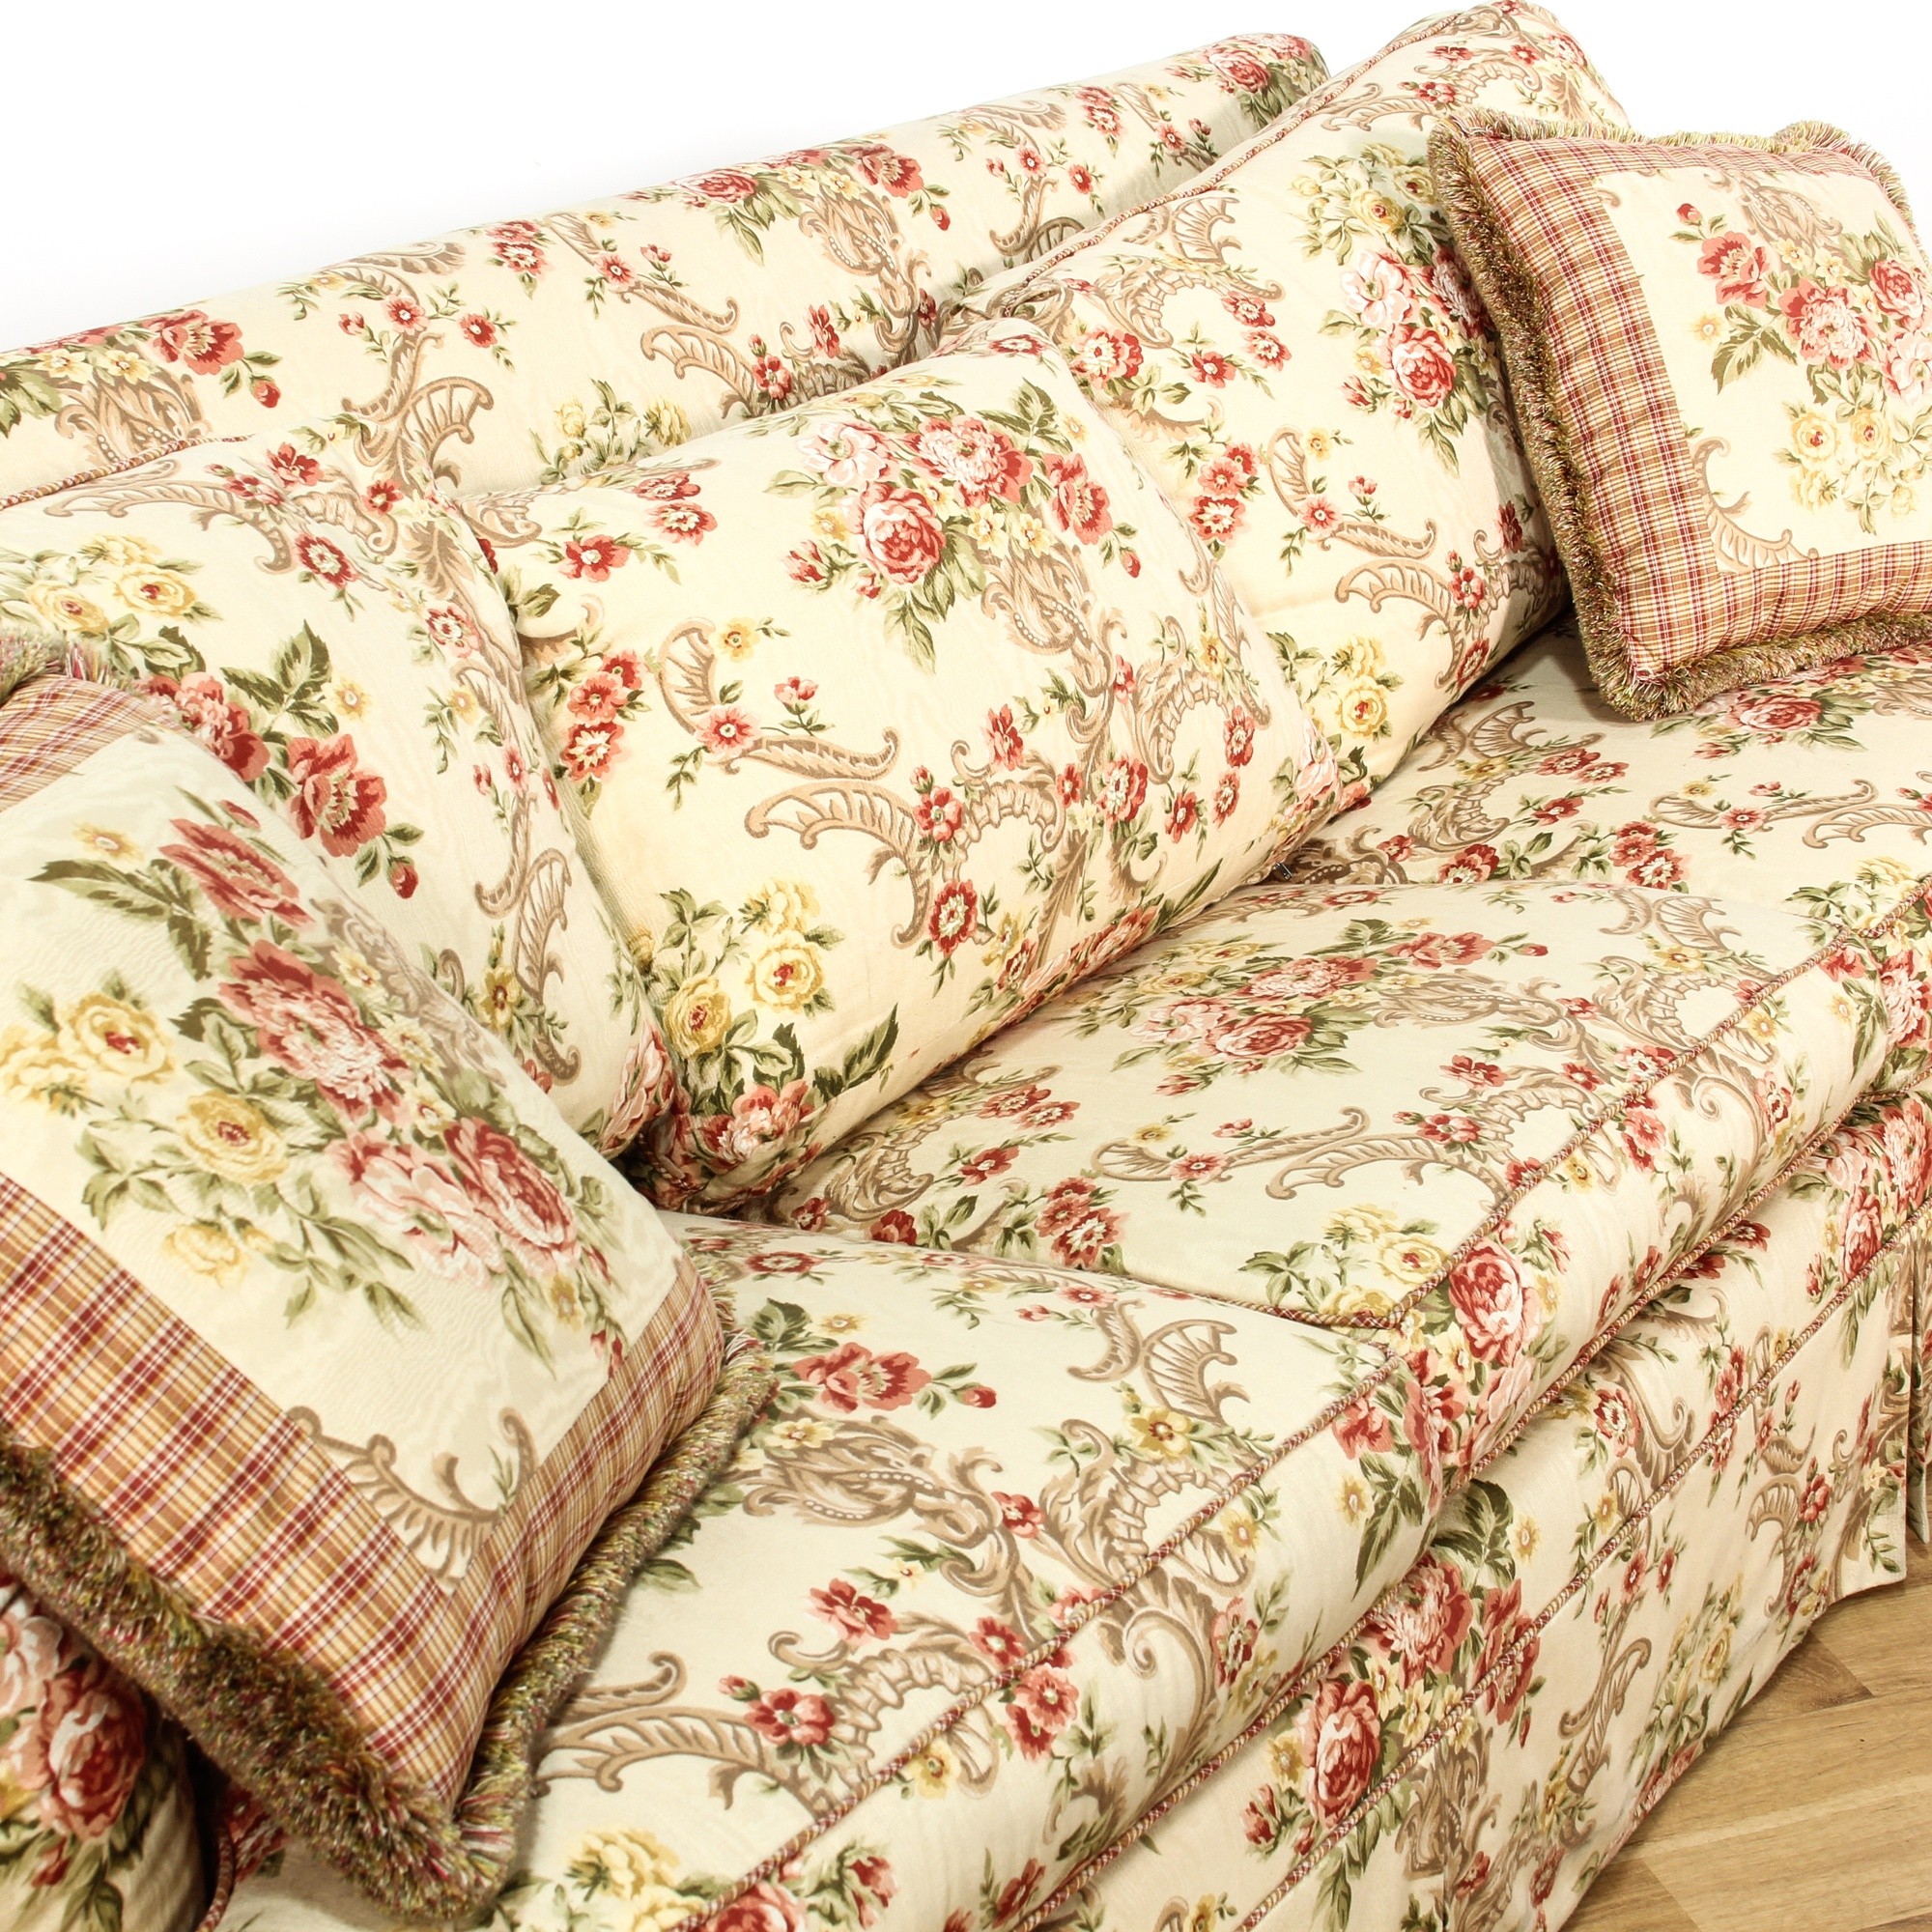 Floral upholstered sleeper sofa bed loveseat vintage for Floral sofa bed